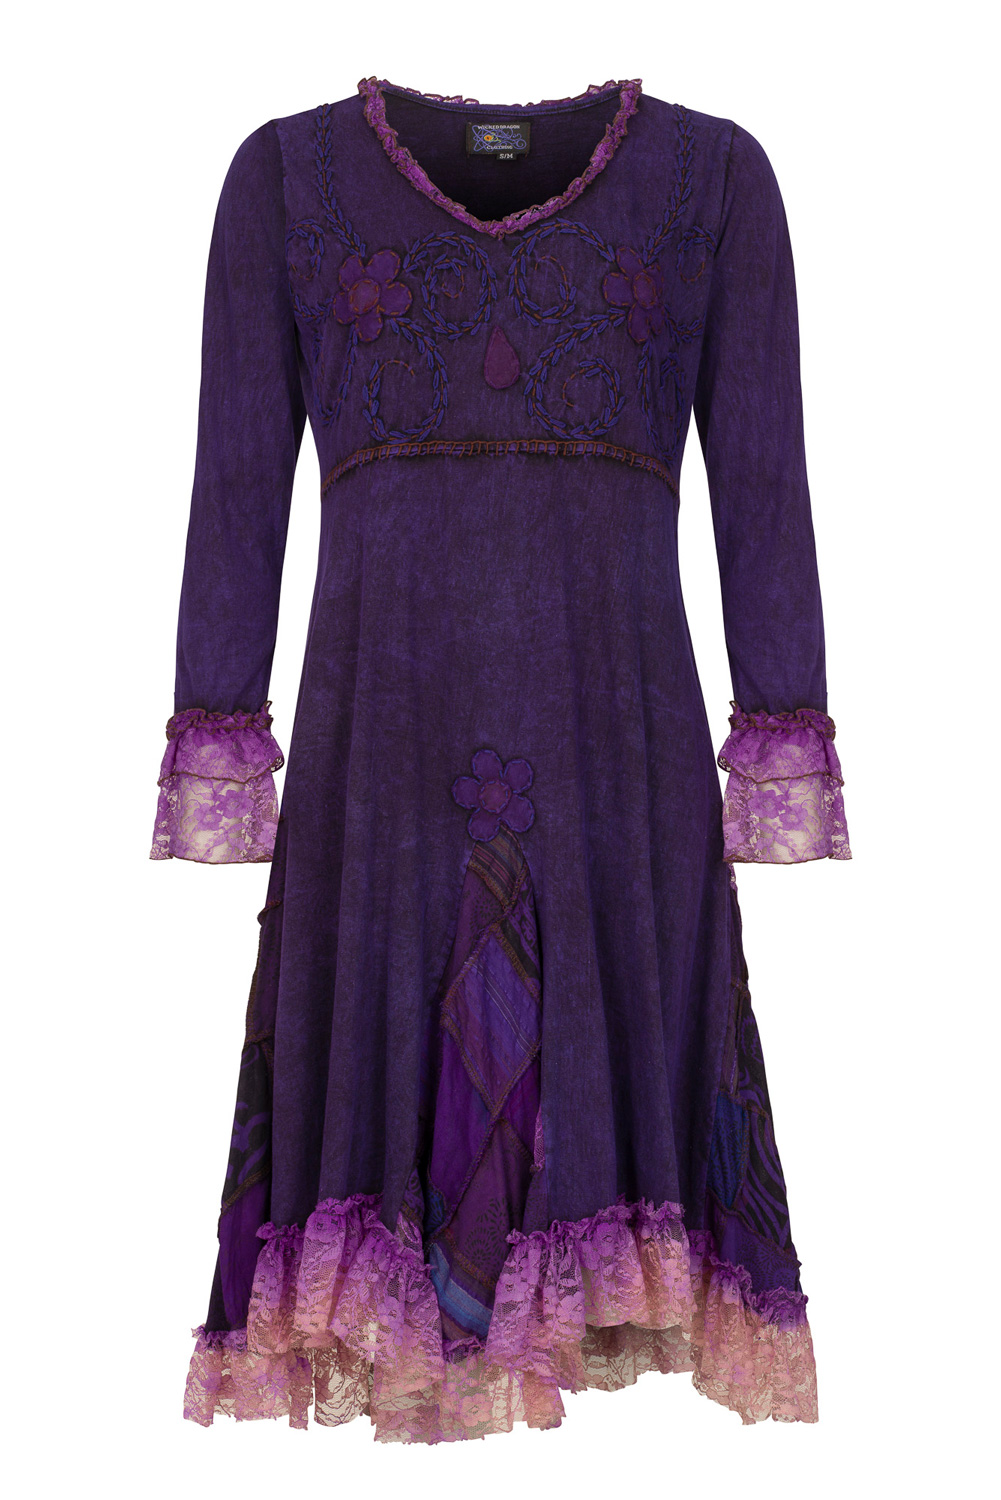 Boho style dress with patchwork and lace